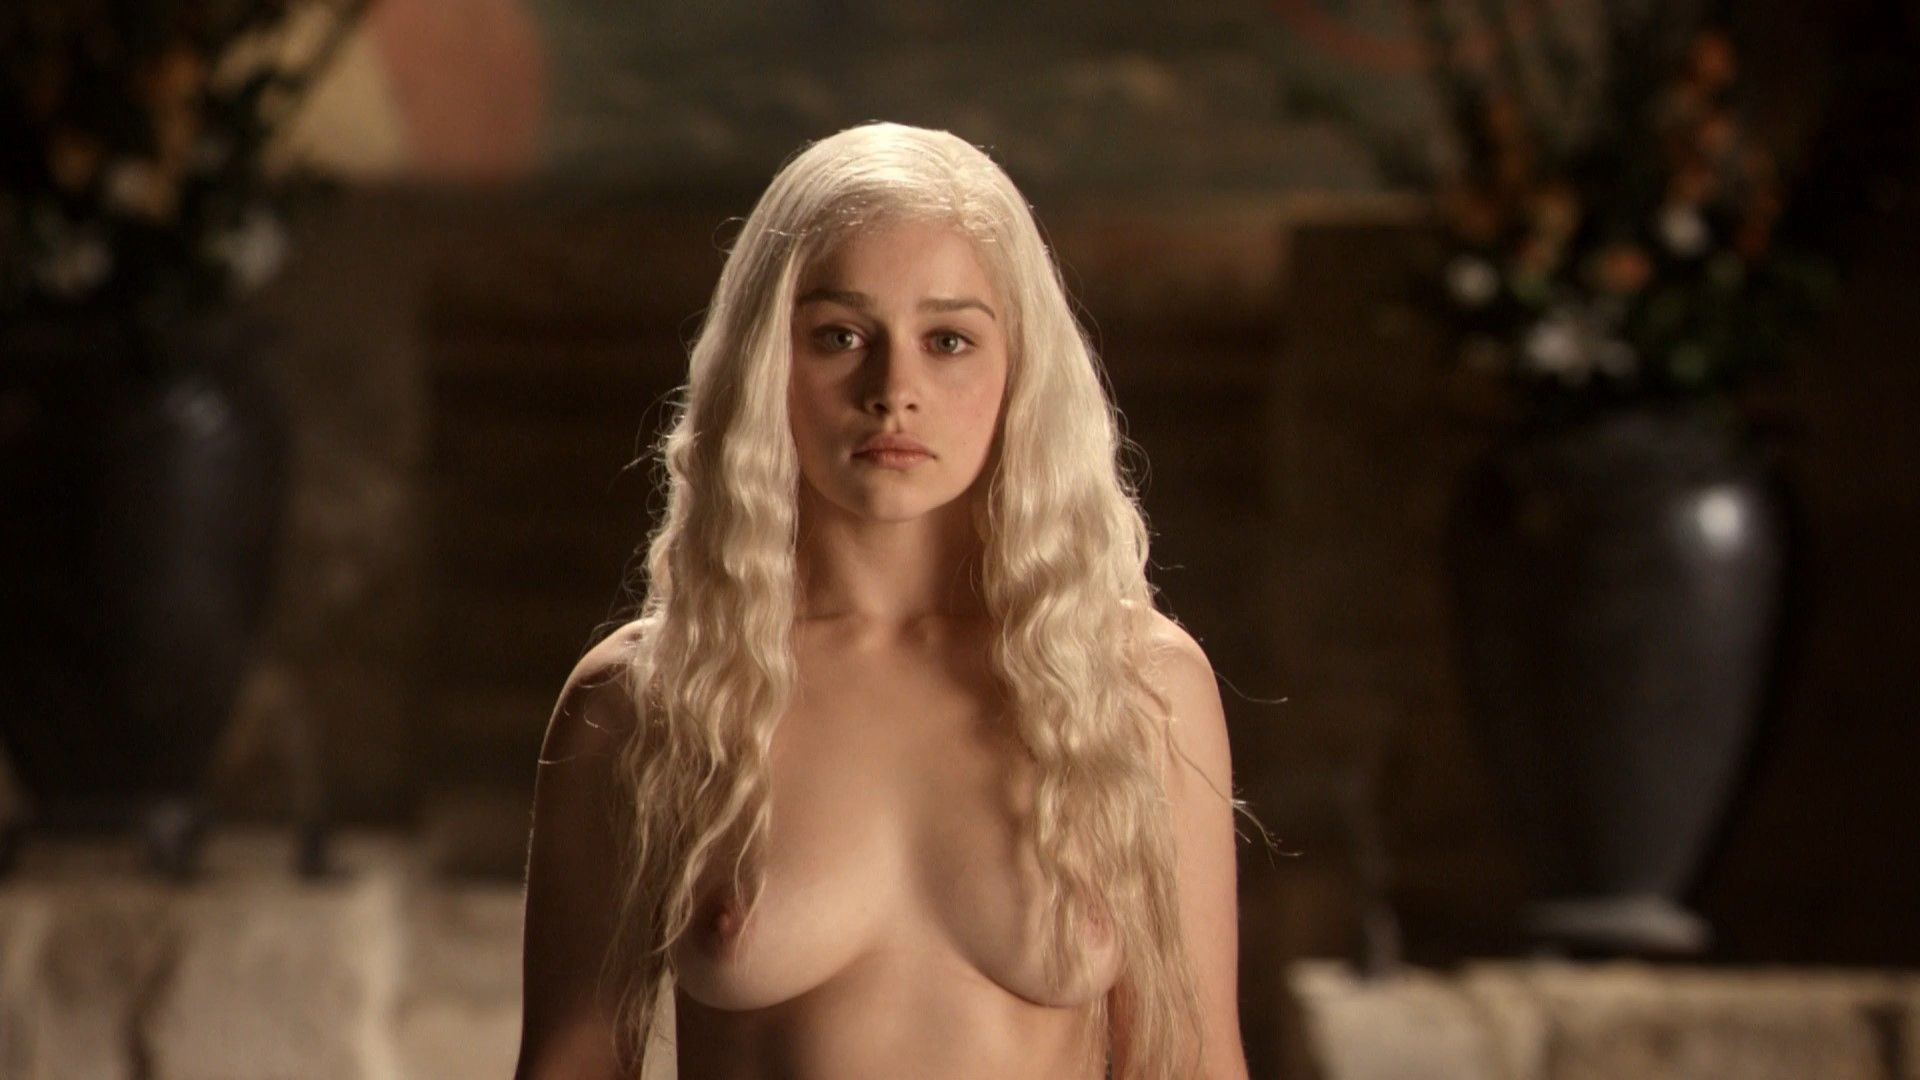 Emilia Clarke Nude Photos